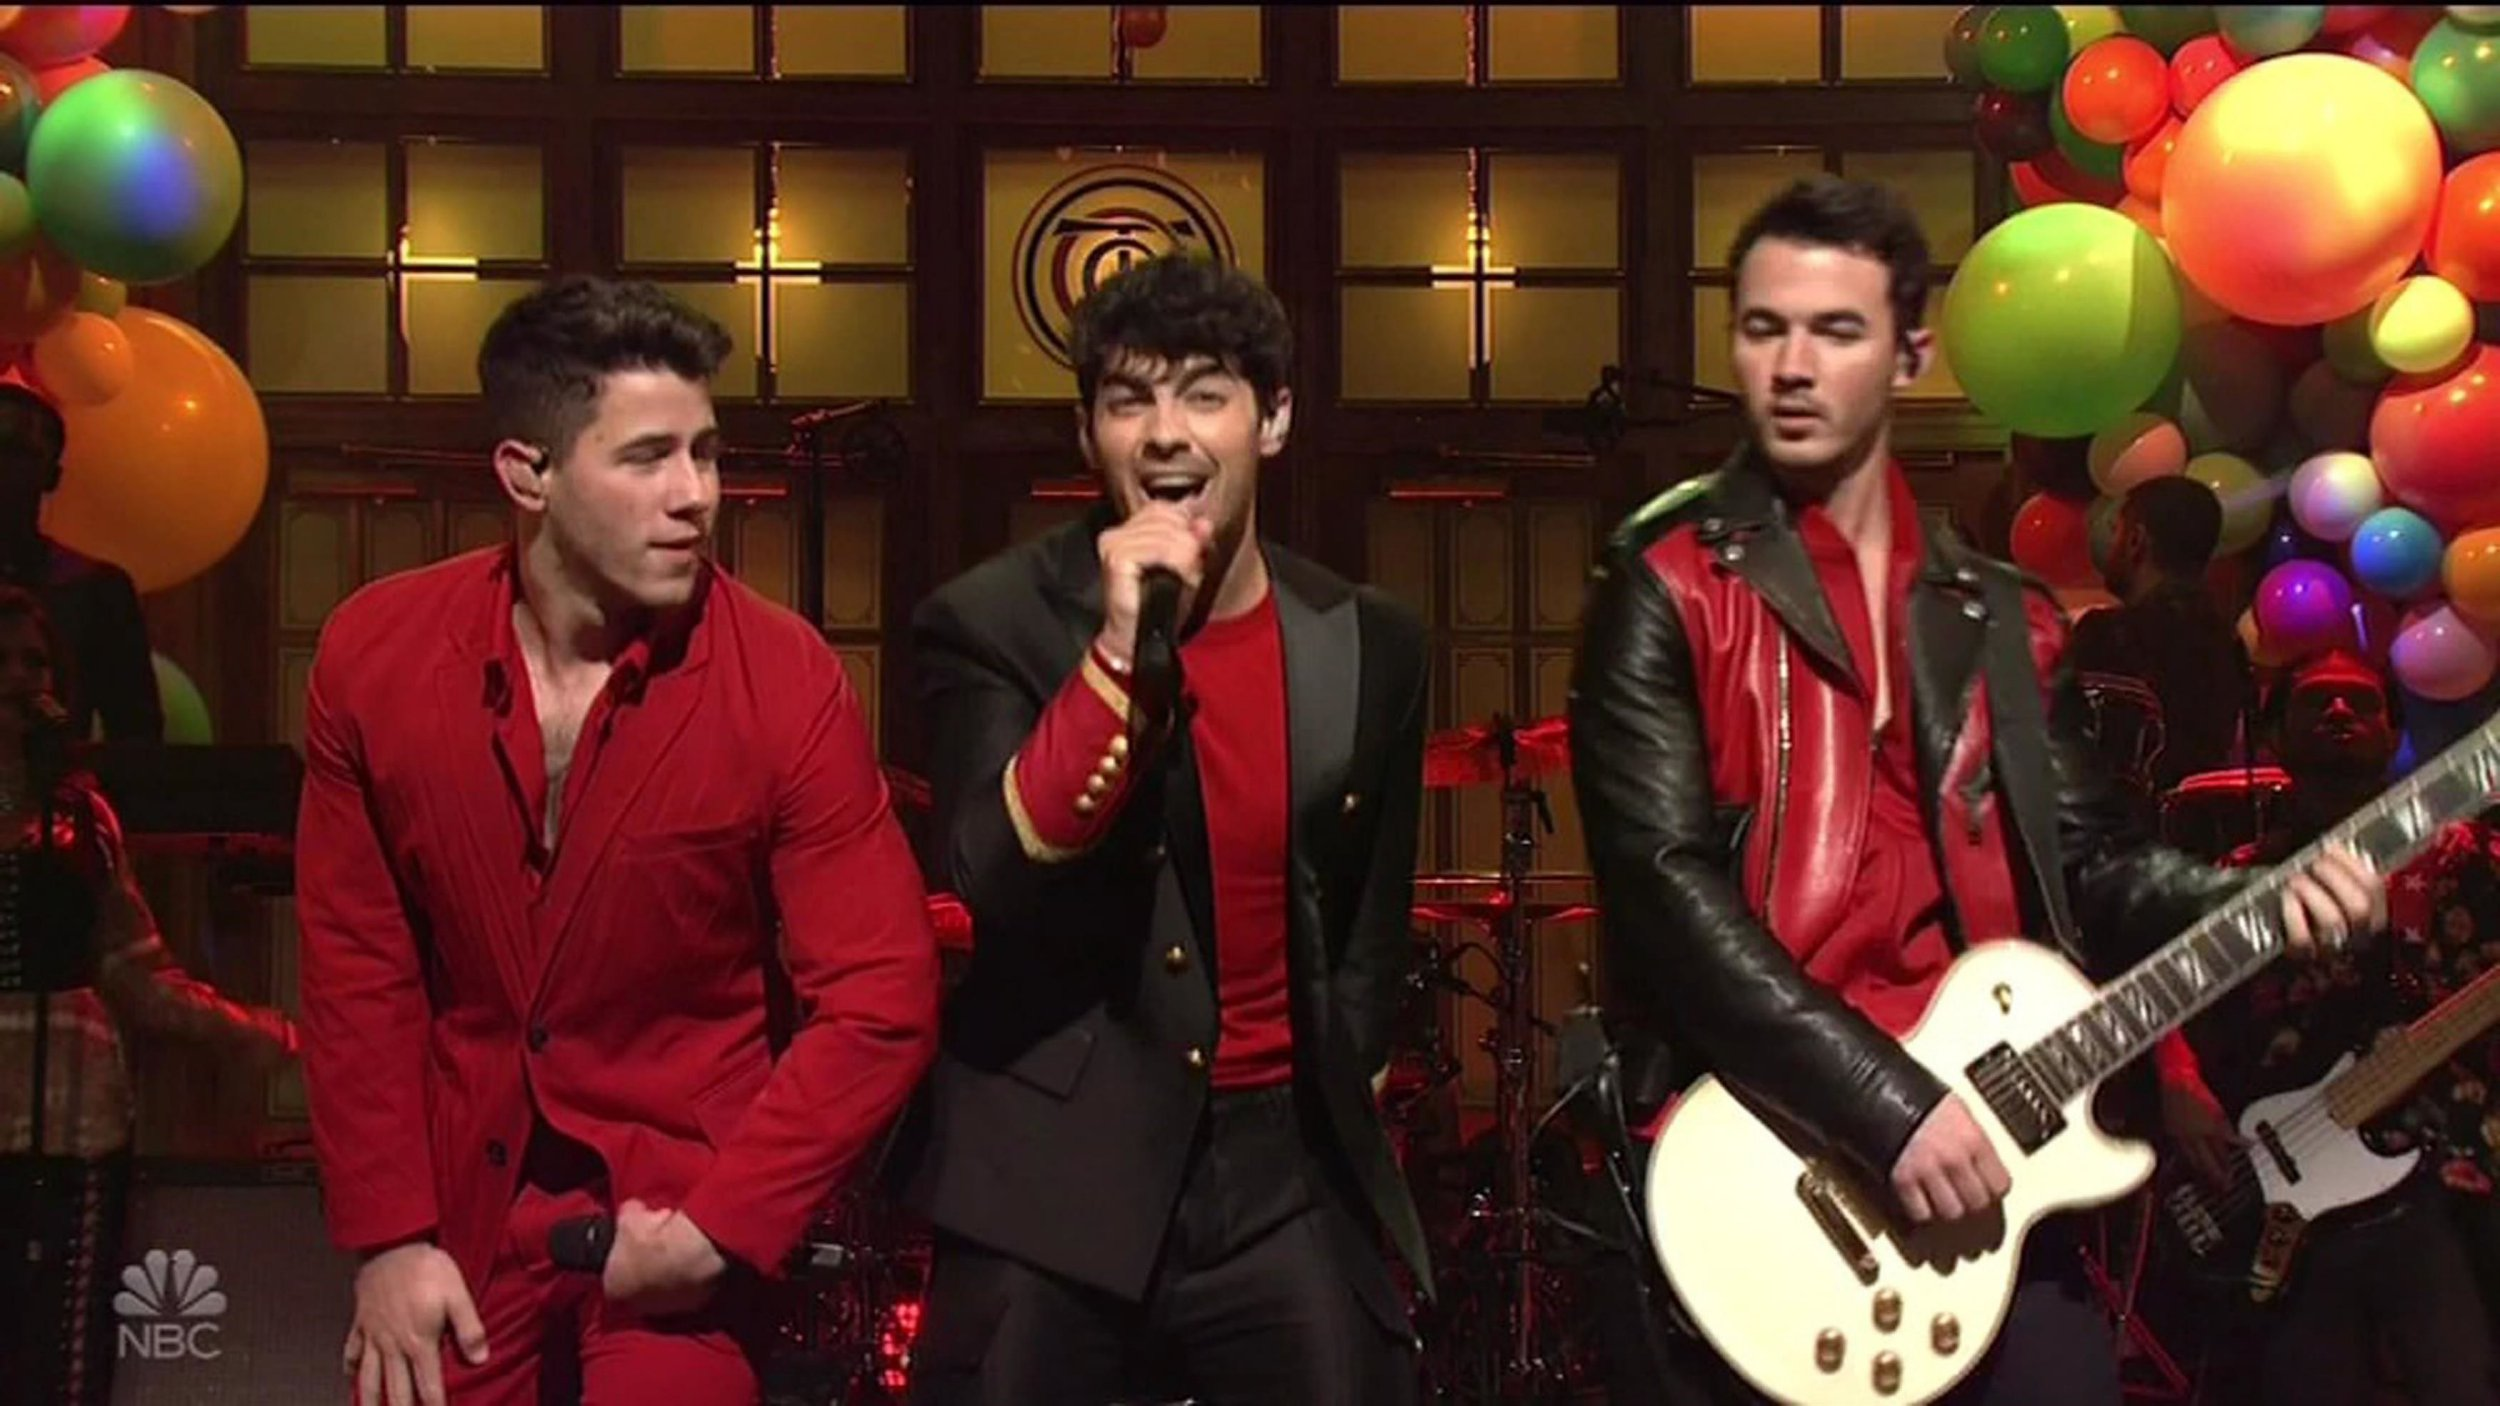 The Jonas Brothers perform on Saturday Night Live for the first time in 10 years. Pictured: Joe, Nick and Kevin Jonas